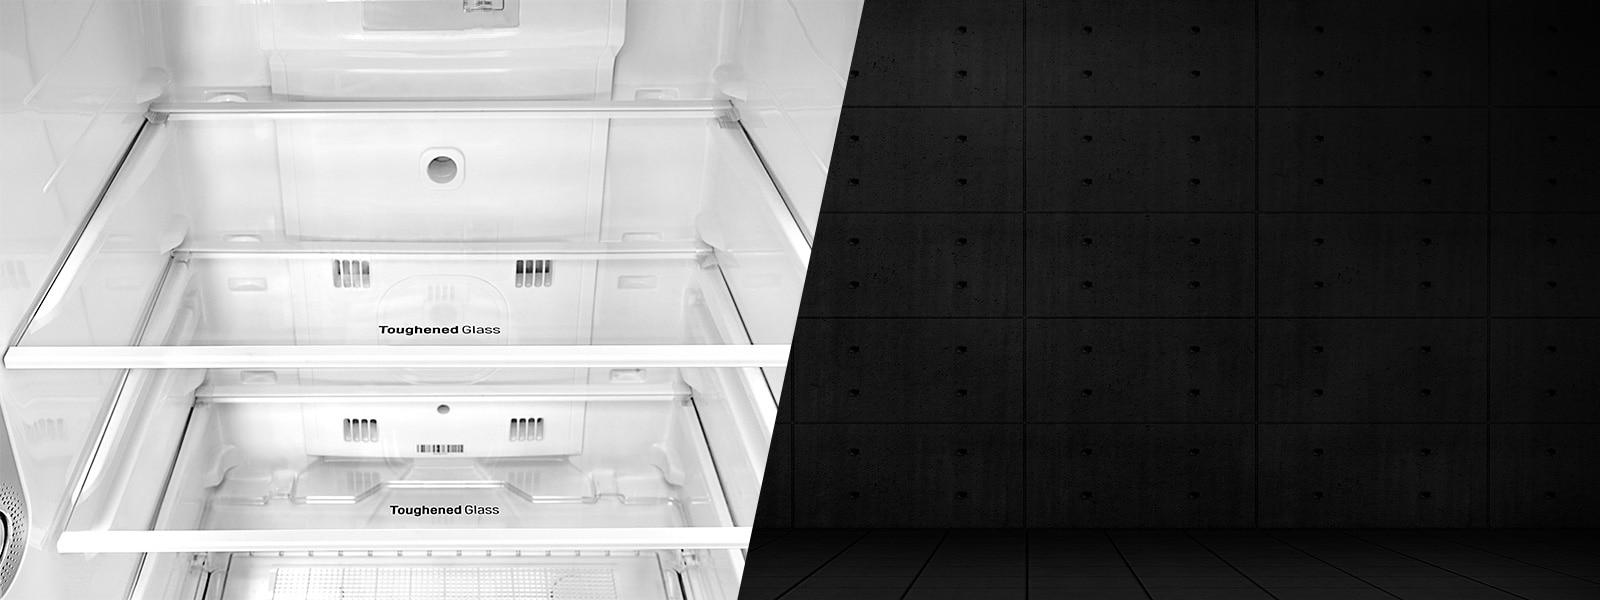 LG Double Door Refrigerator With Toughened Glass Shelves